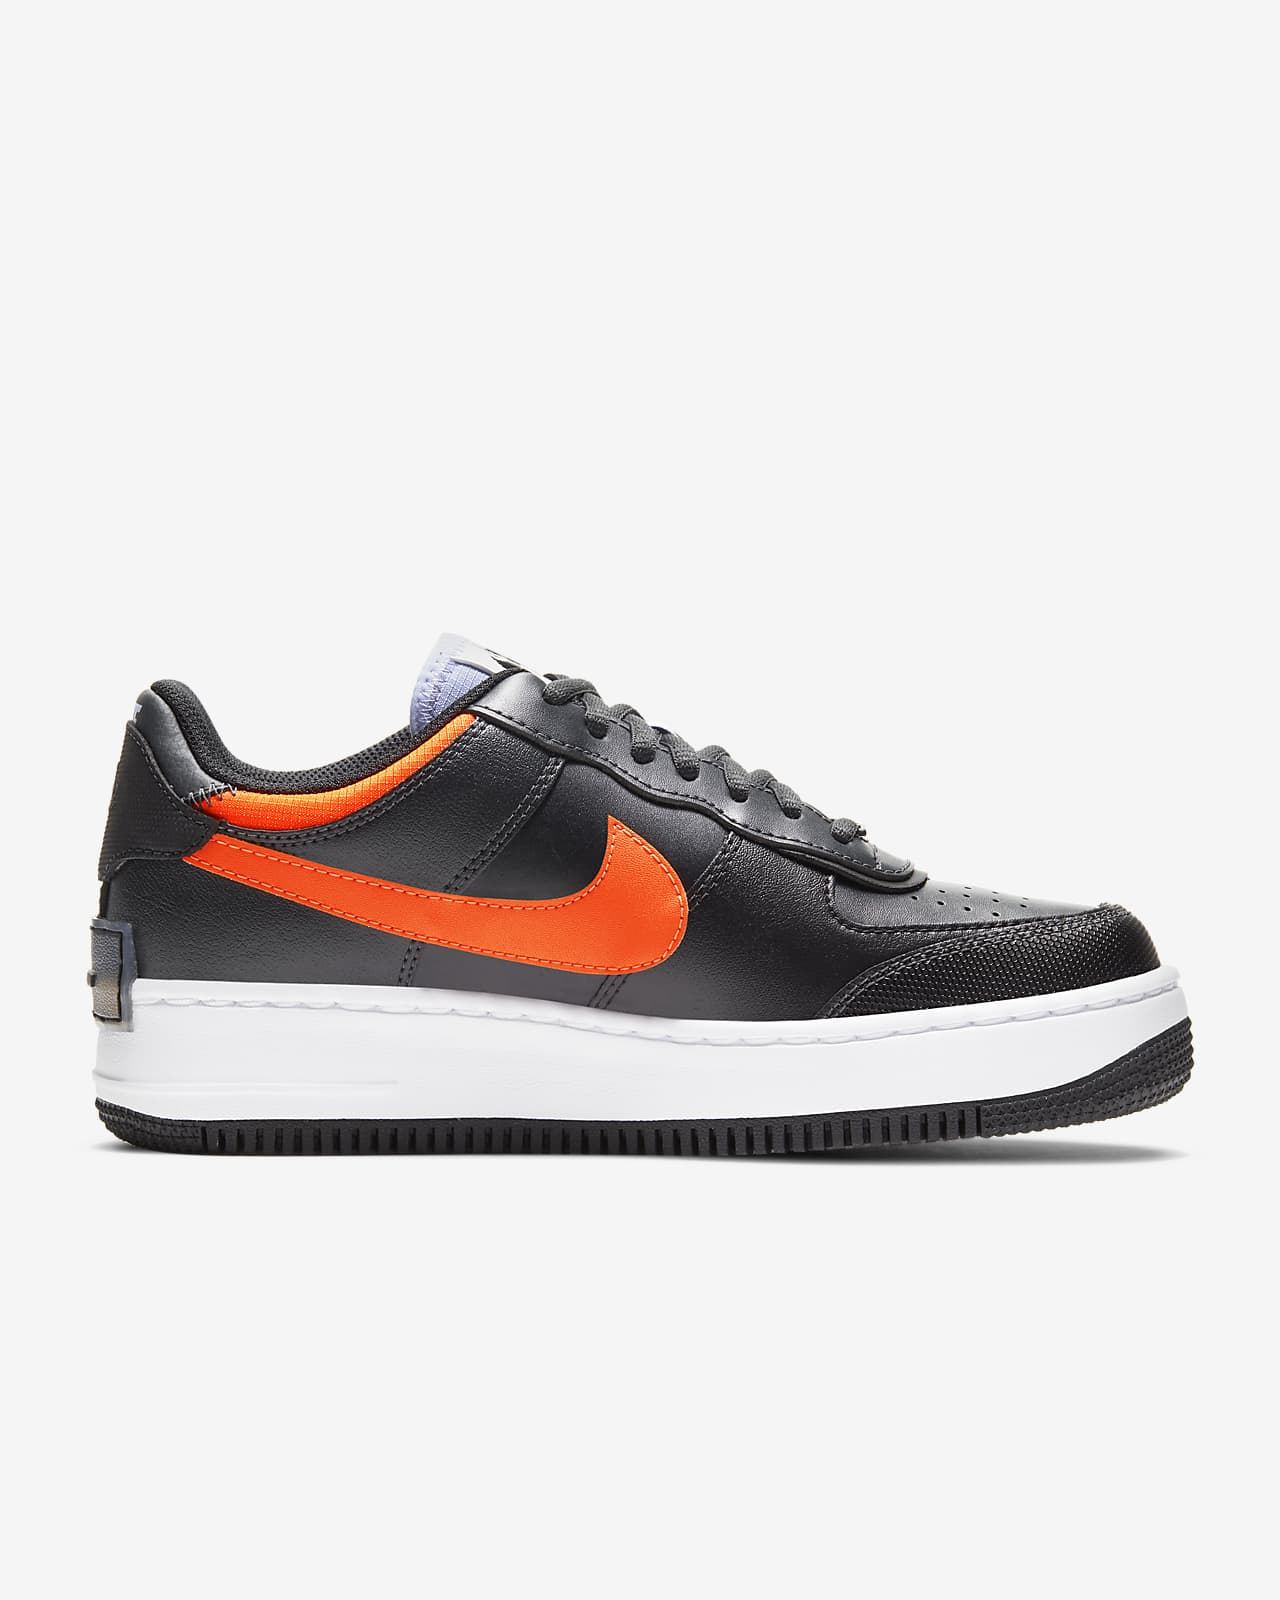 Nike Air Force 1 Shadow SE Women's Shoes